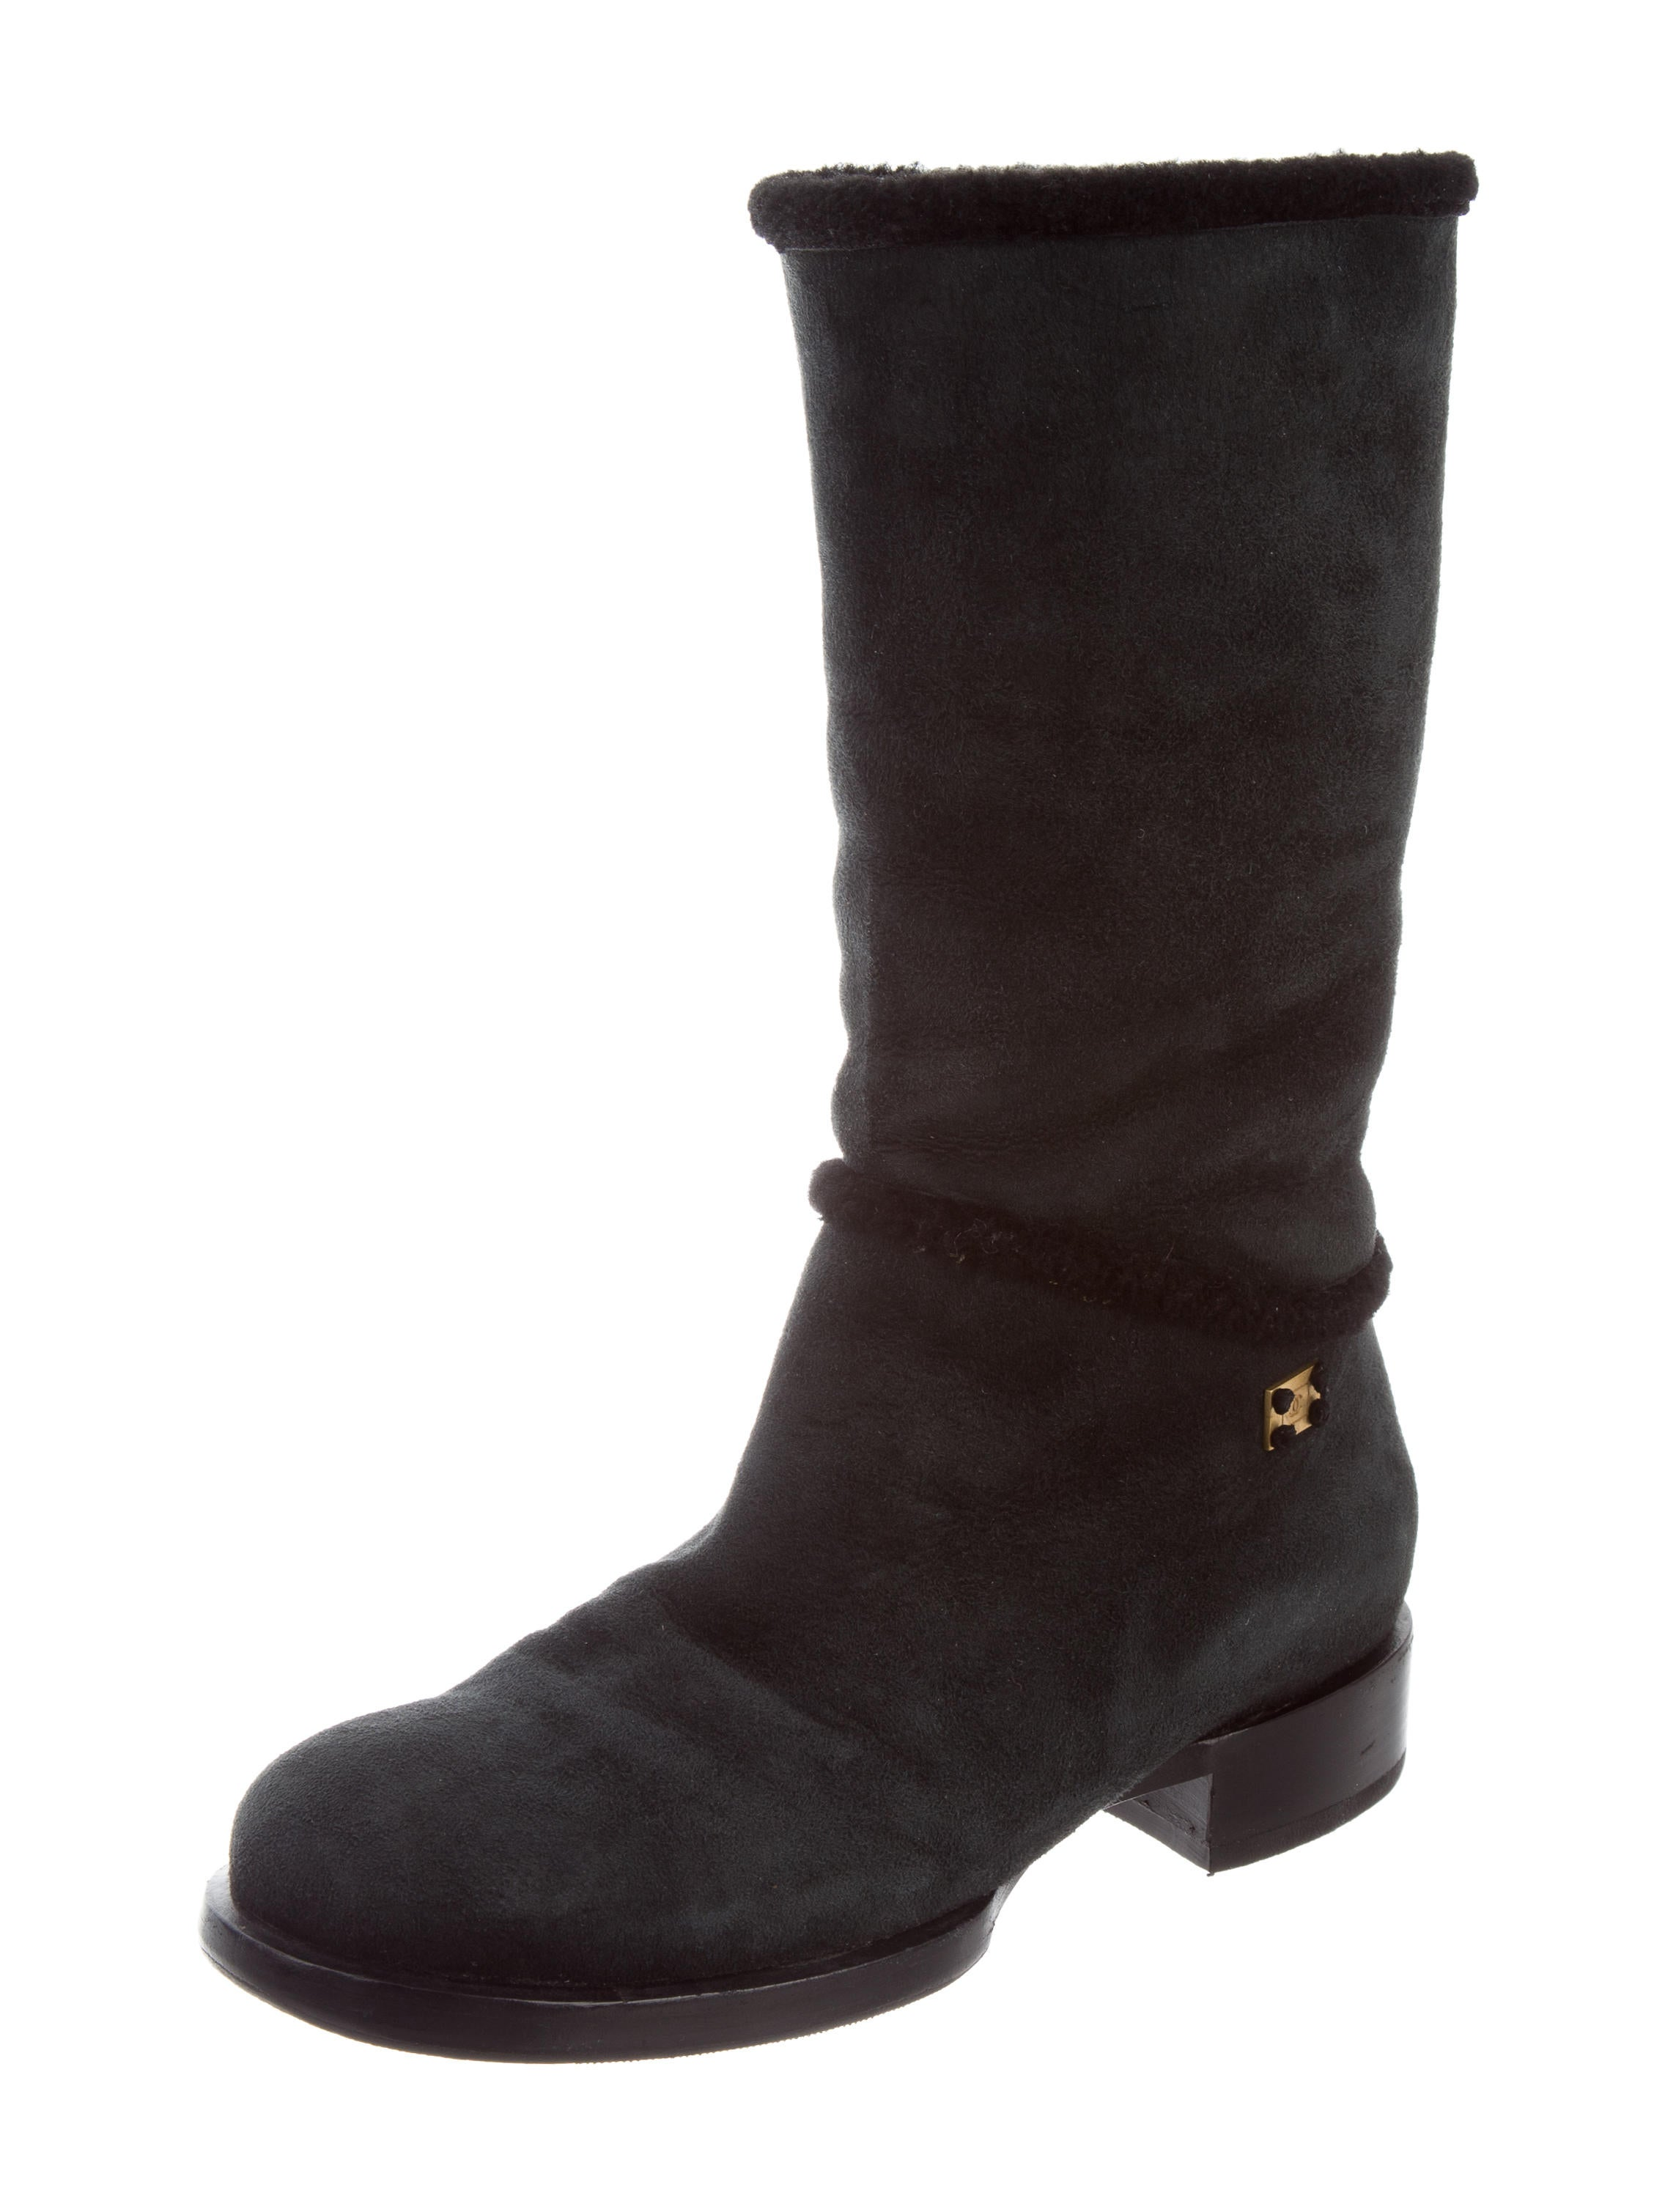 chanel suede mid calf boots shoes cha203429 the realreal